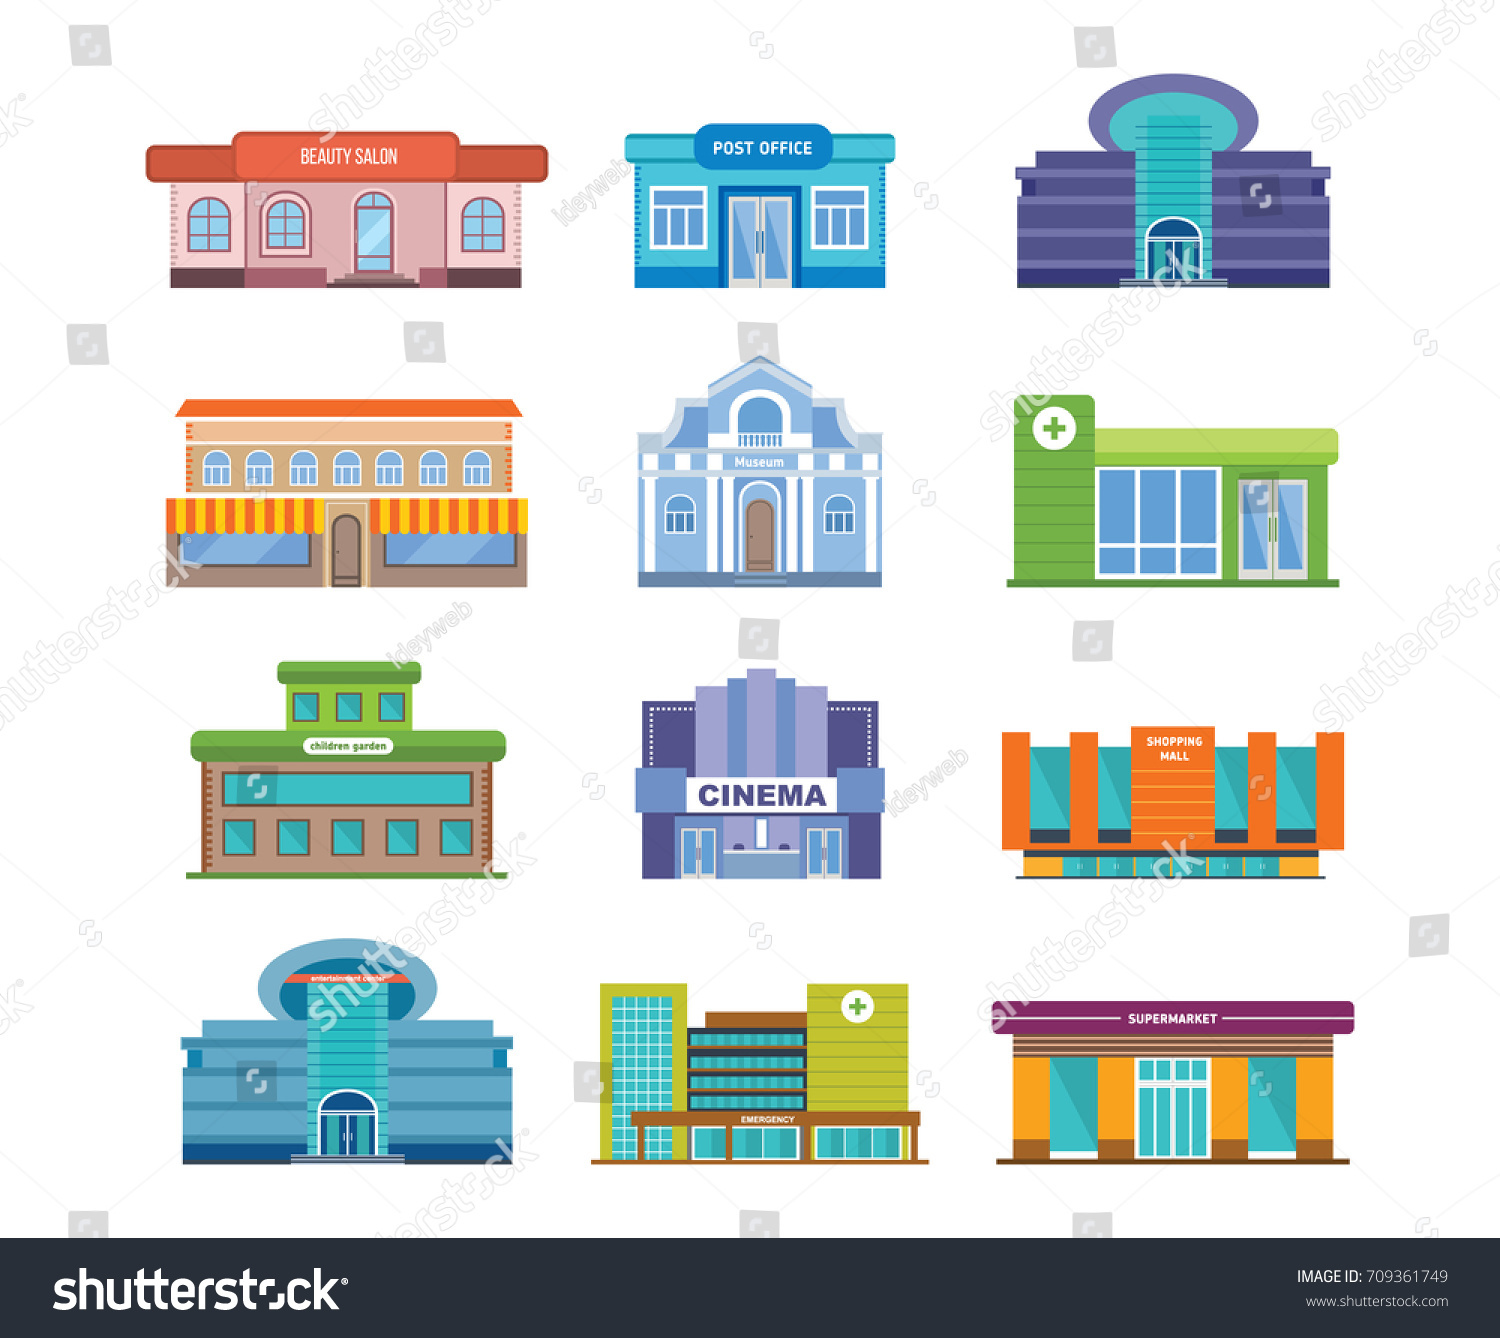 Set Of Urban Buildings And Architectural Structures Beauty Salon Post Office Shopping Centers